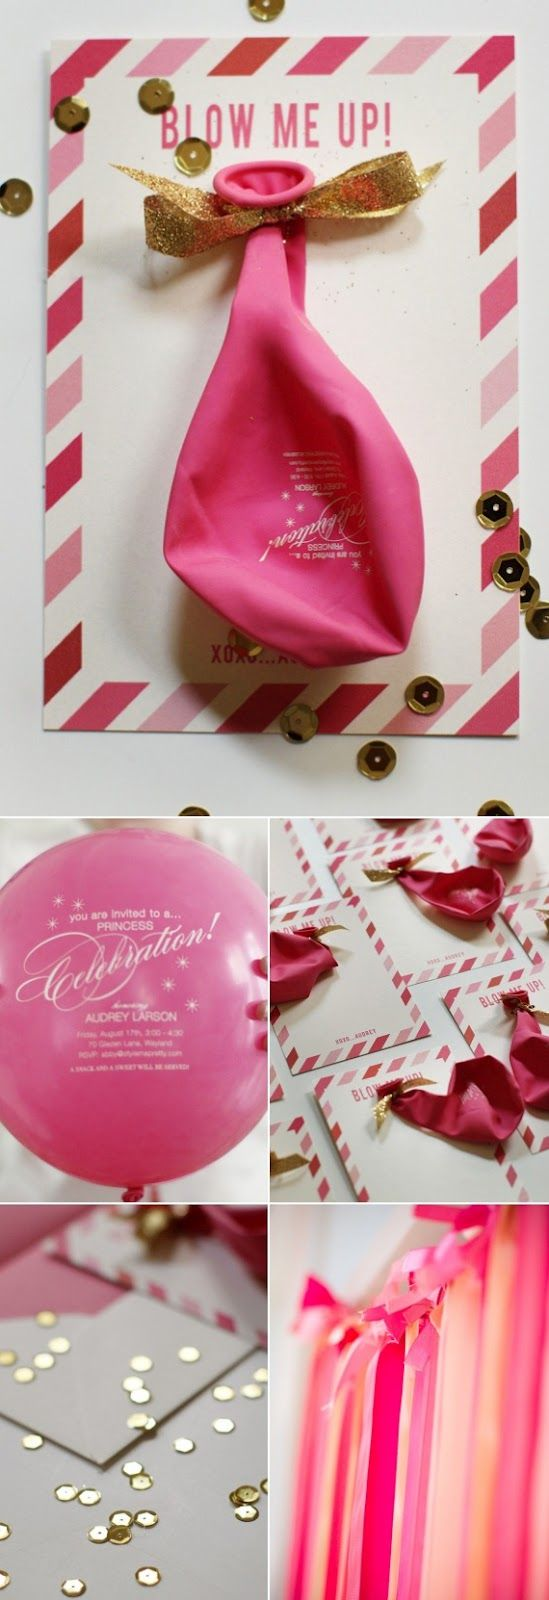 Party invite: printed on a balloon- says \